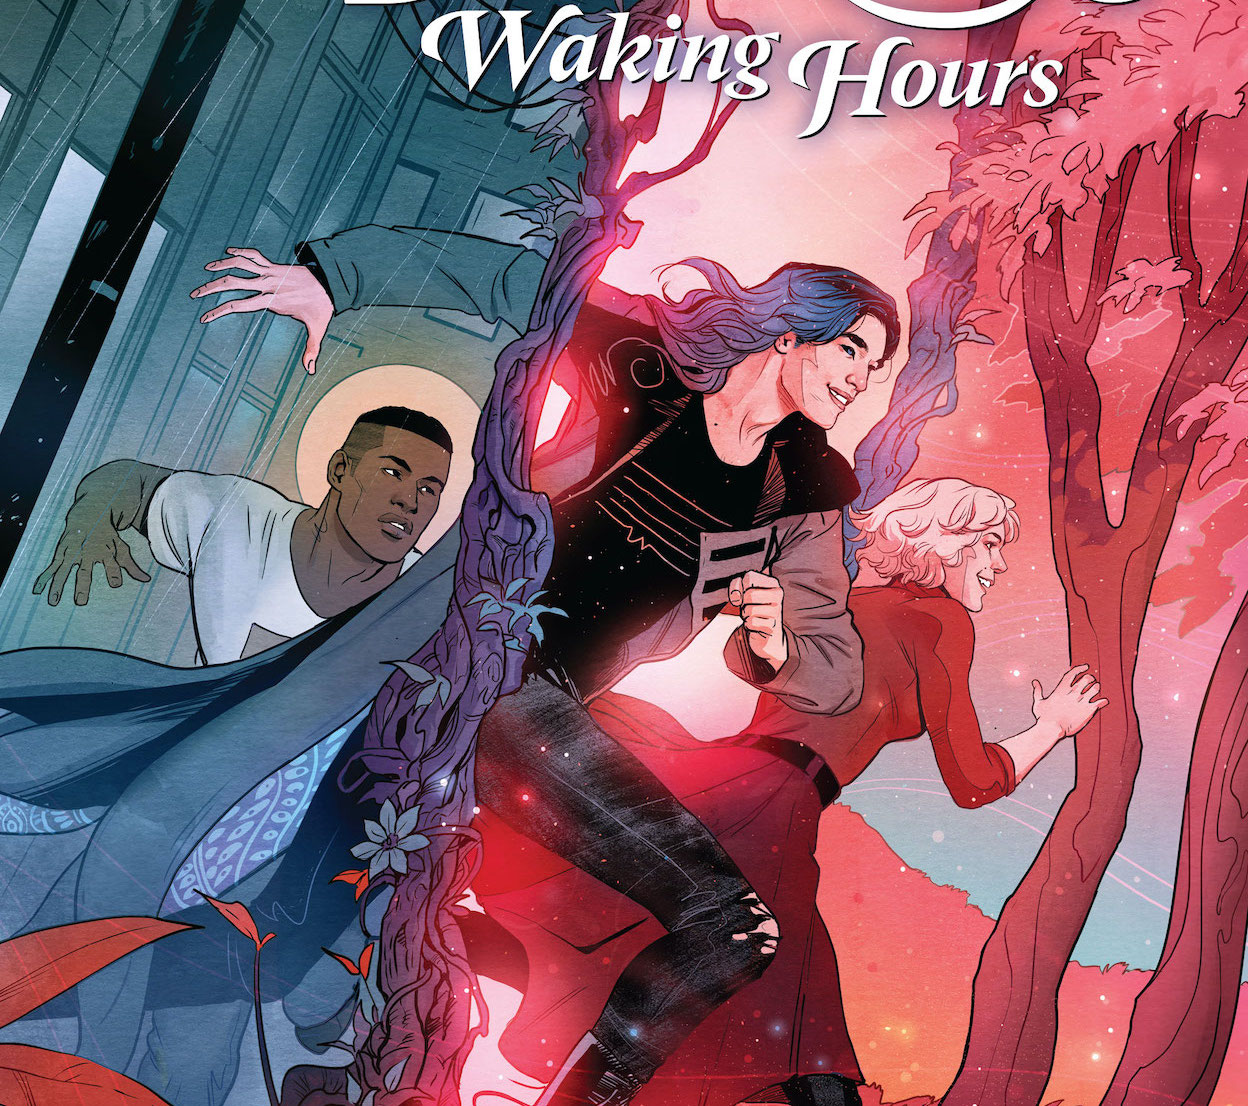 'The Dreaming: Waking Hours' #8 takes a field trip to Fairie